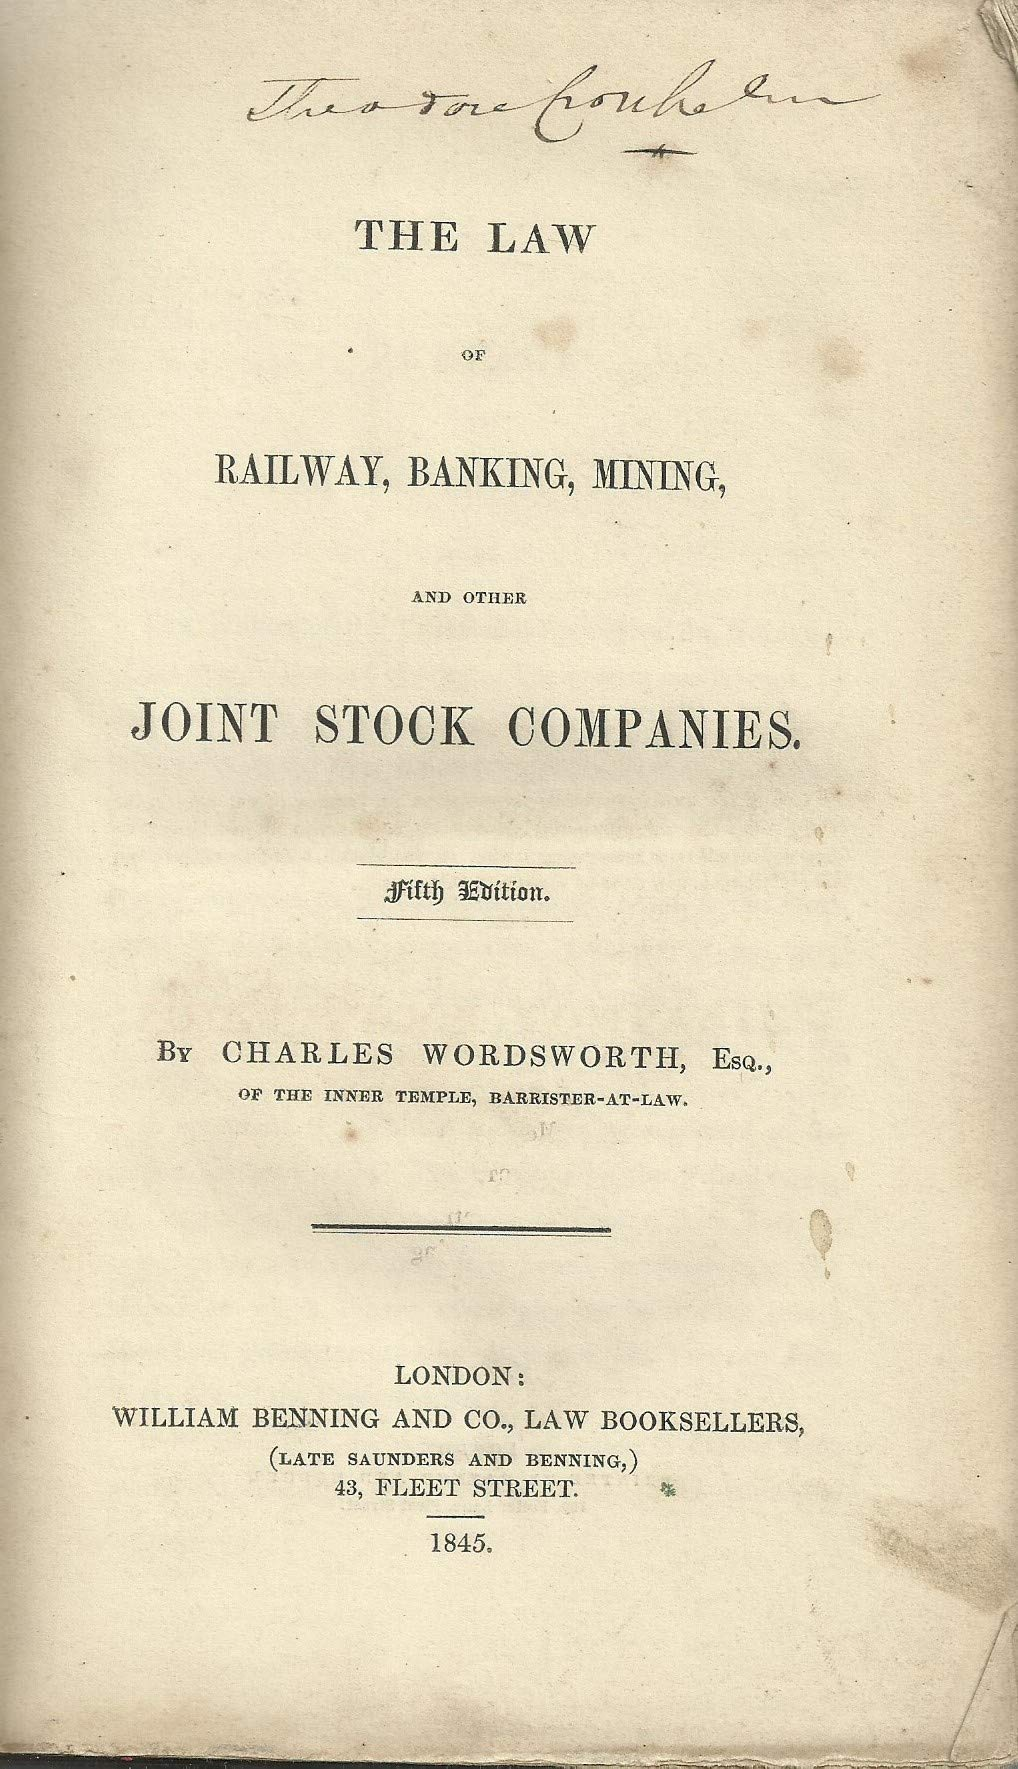 The Law Of Railway, Banking, Mining And Other Joint Stock Companies